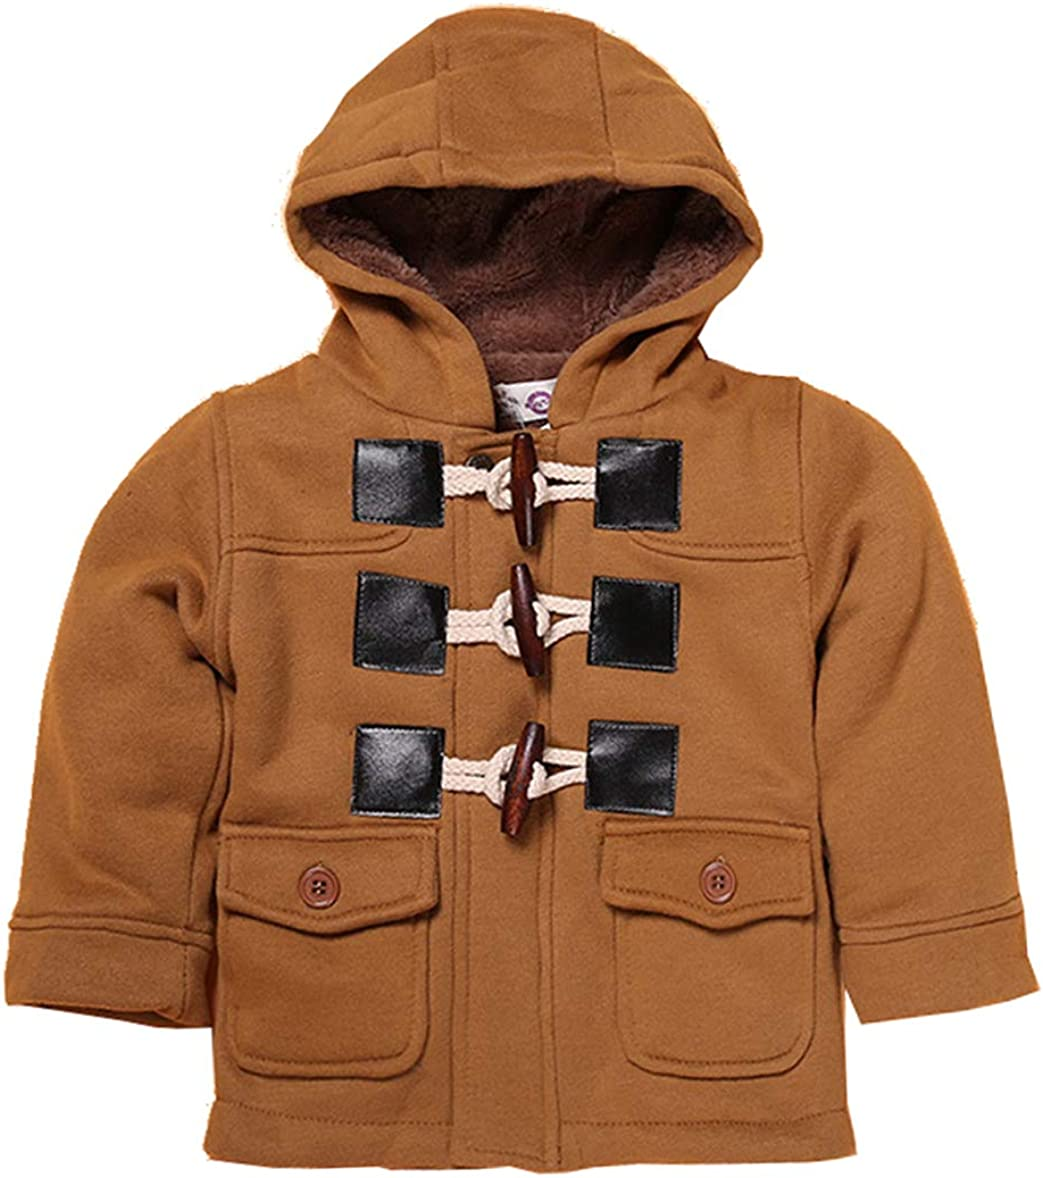 Popular products Qinni-shop Baby Toddler Little Boys Fleece Gray Price reduction Duf Khaki Hooded